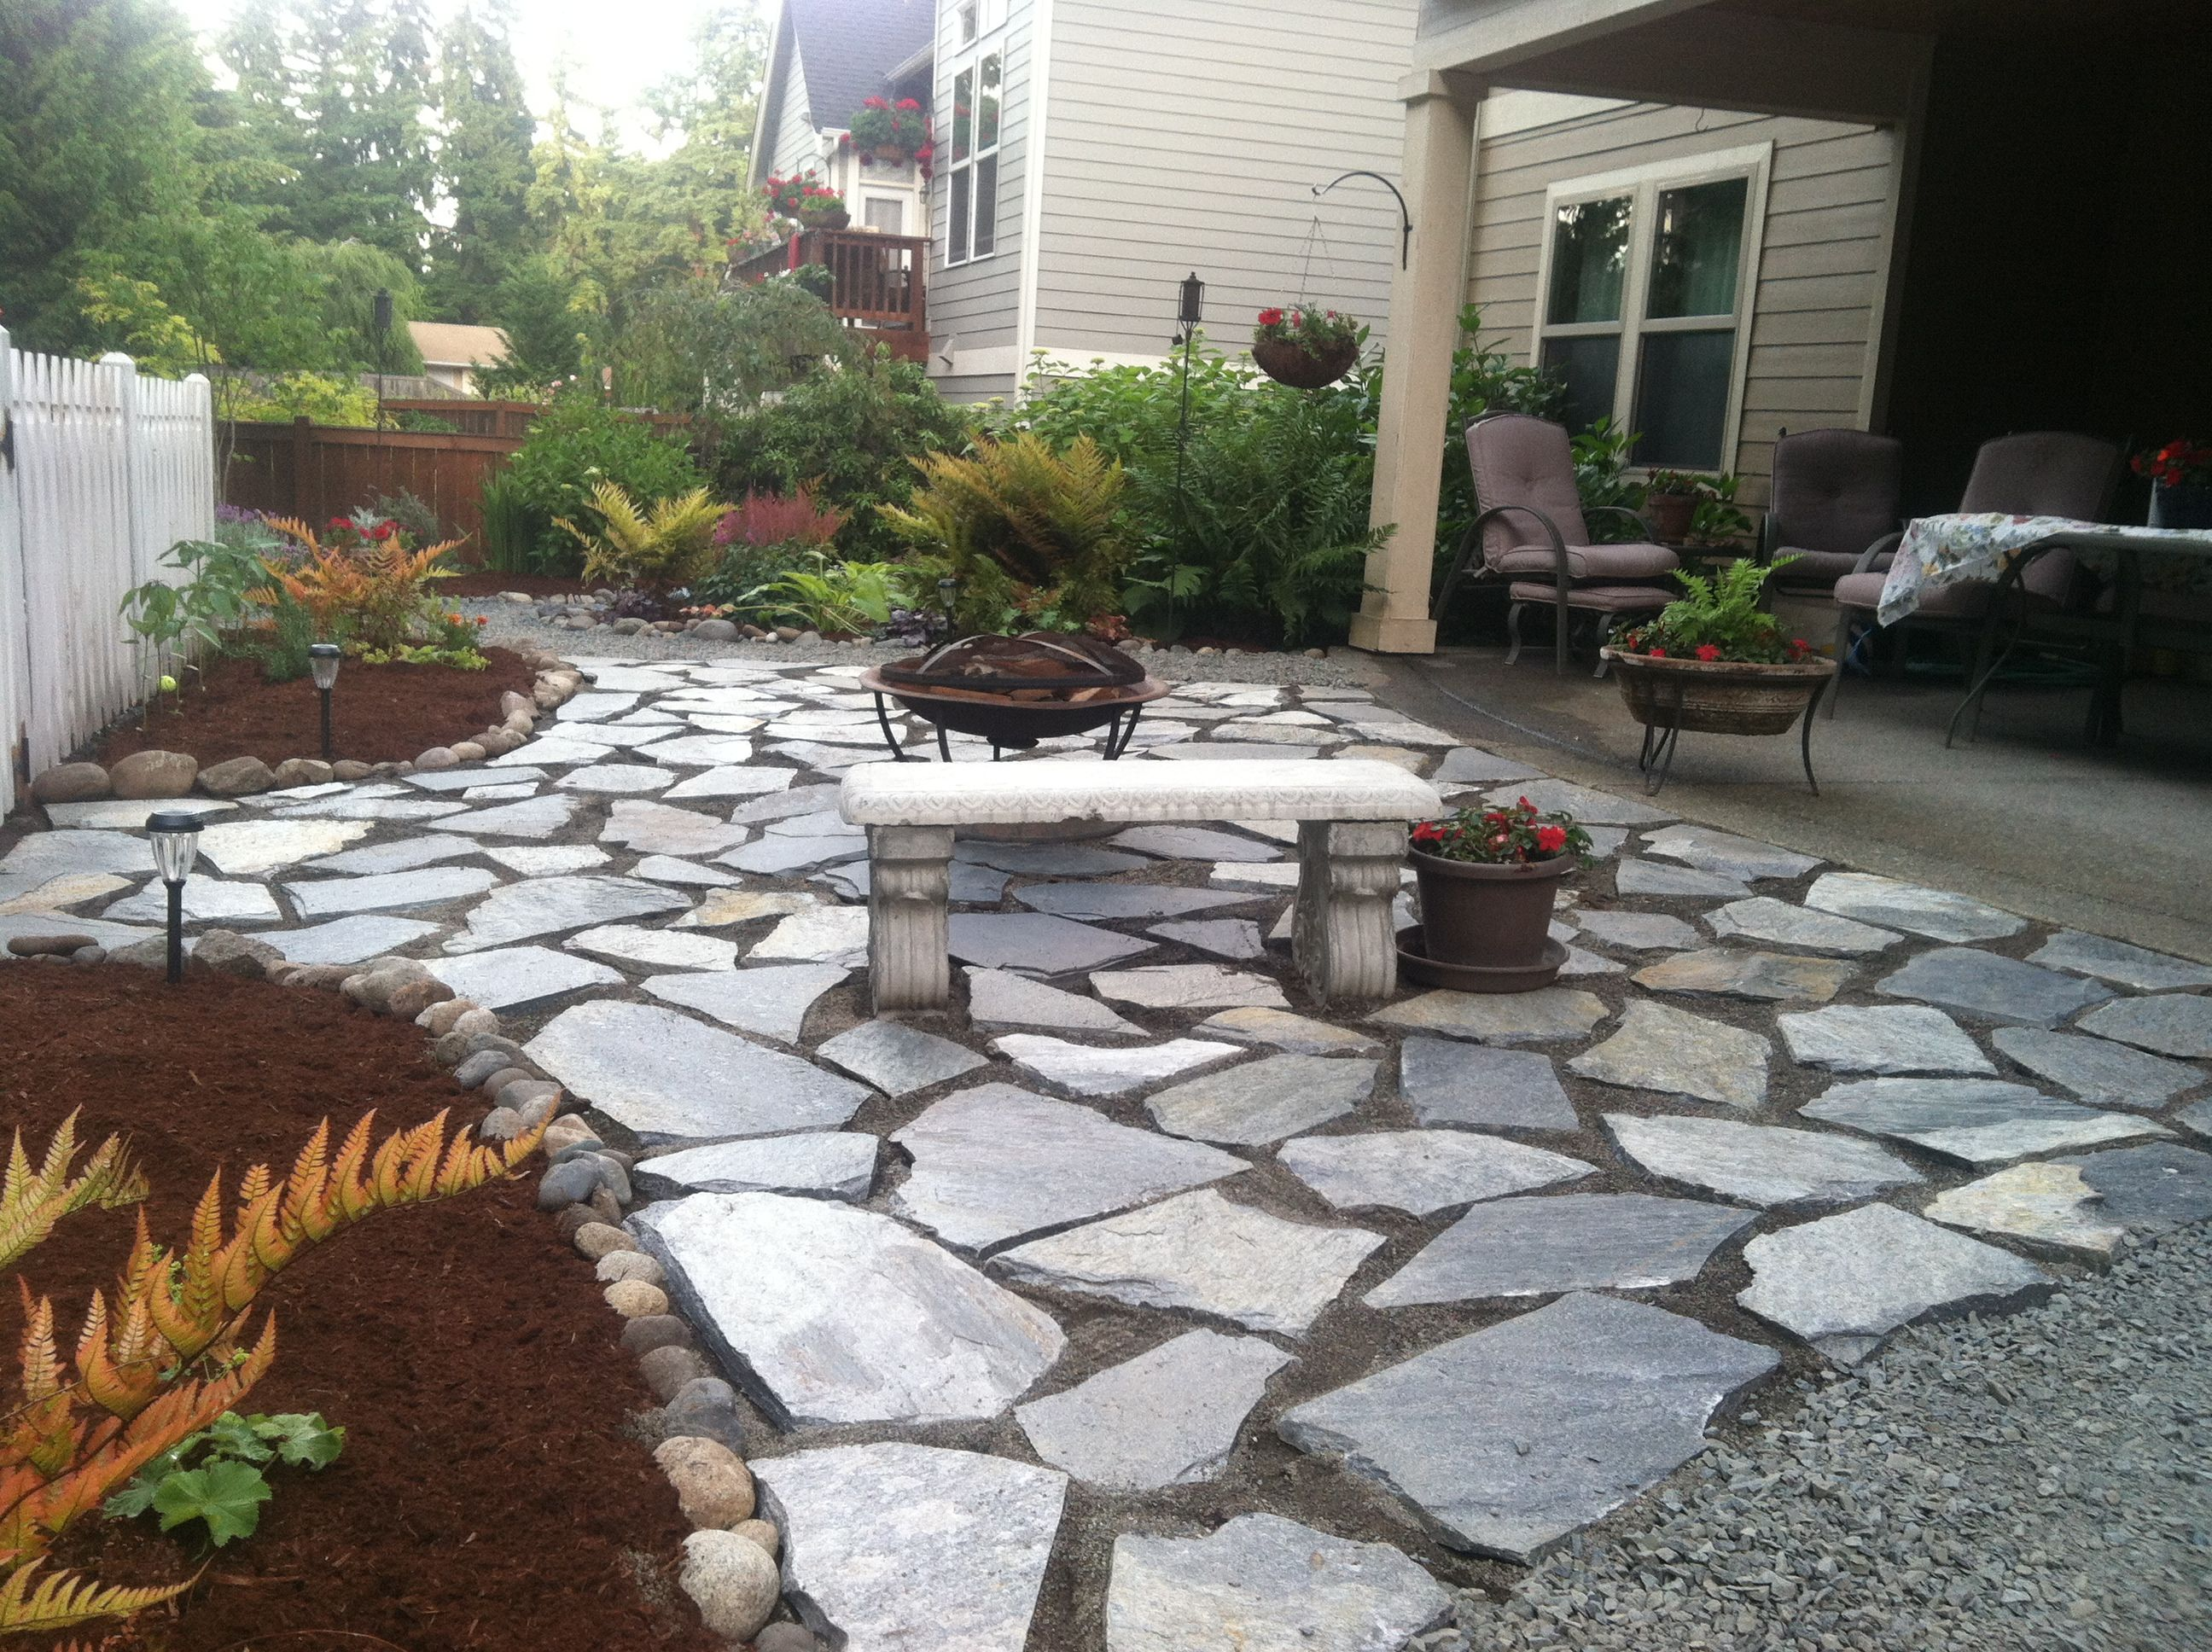 Our patio Cowboy coffee flagstone